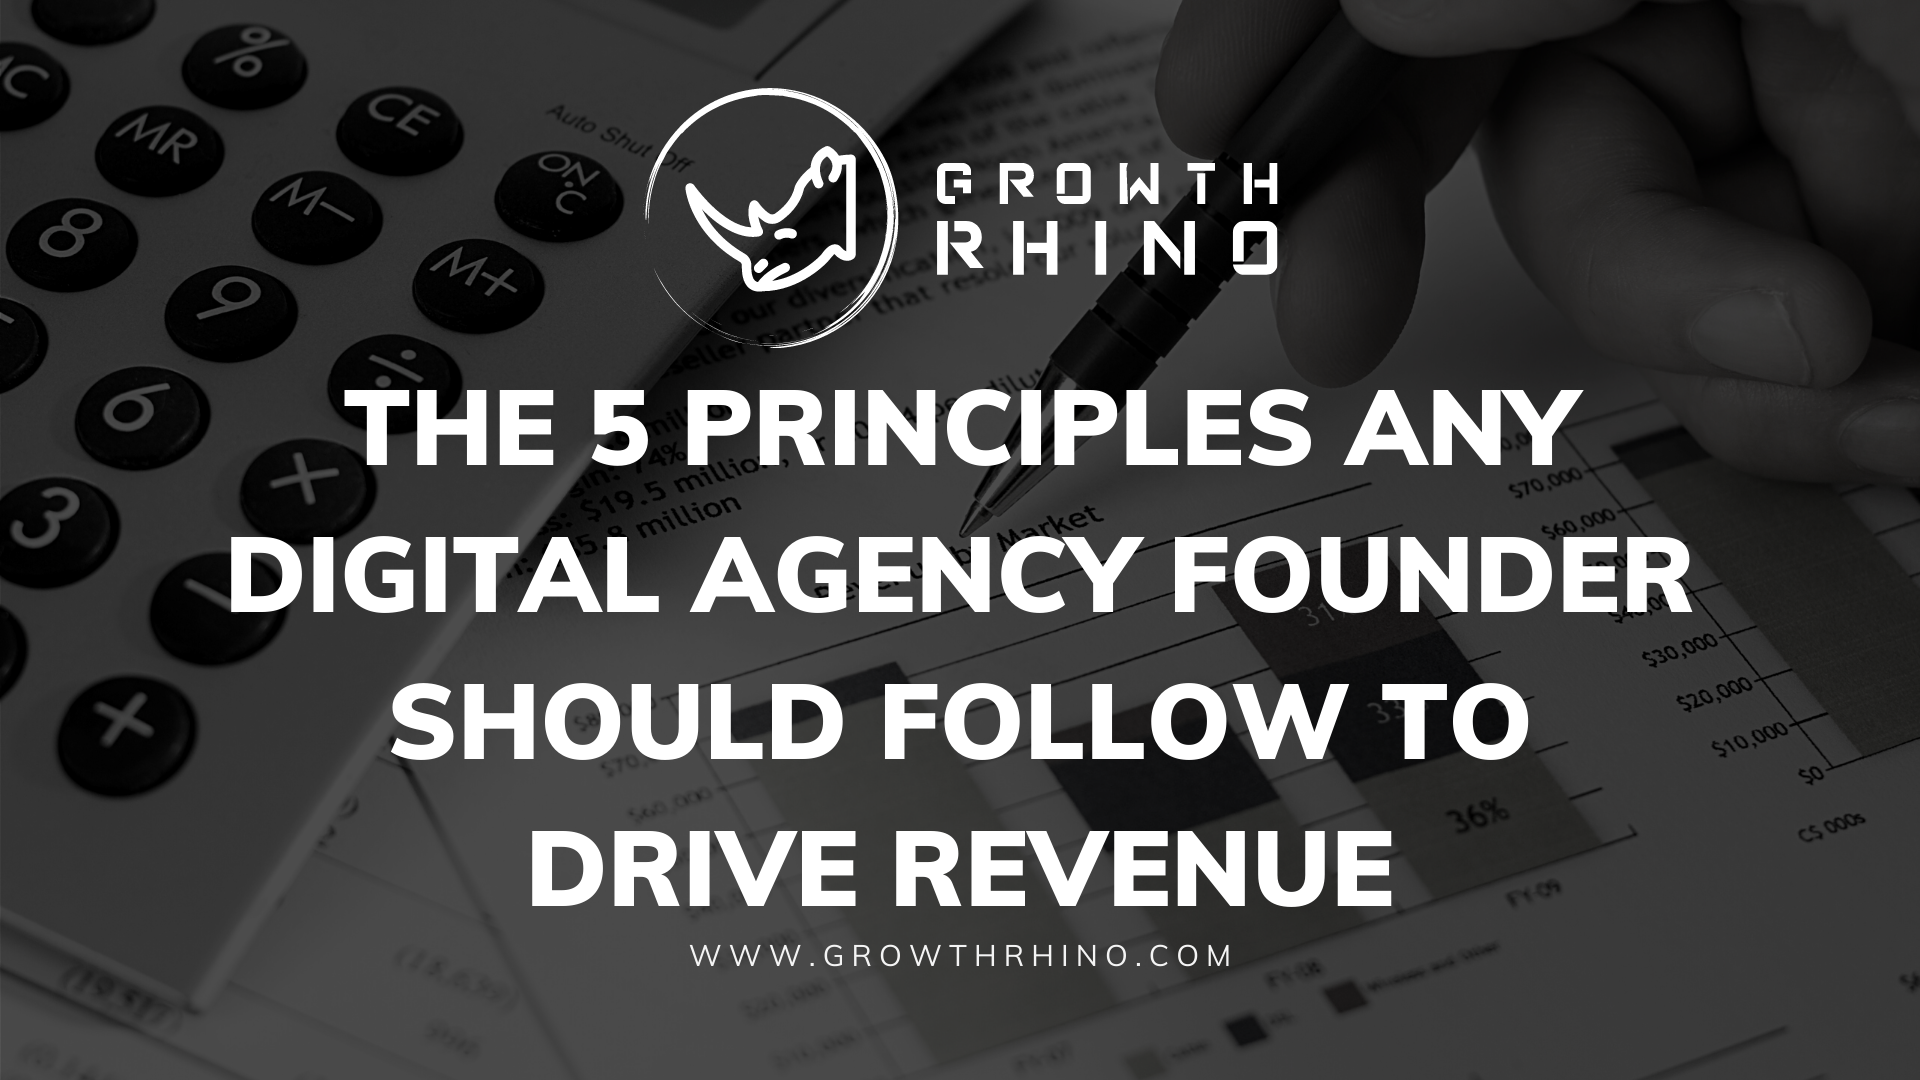 The 5 Principles Digital Agency Founder Should Follow To Drive Revenue